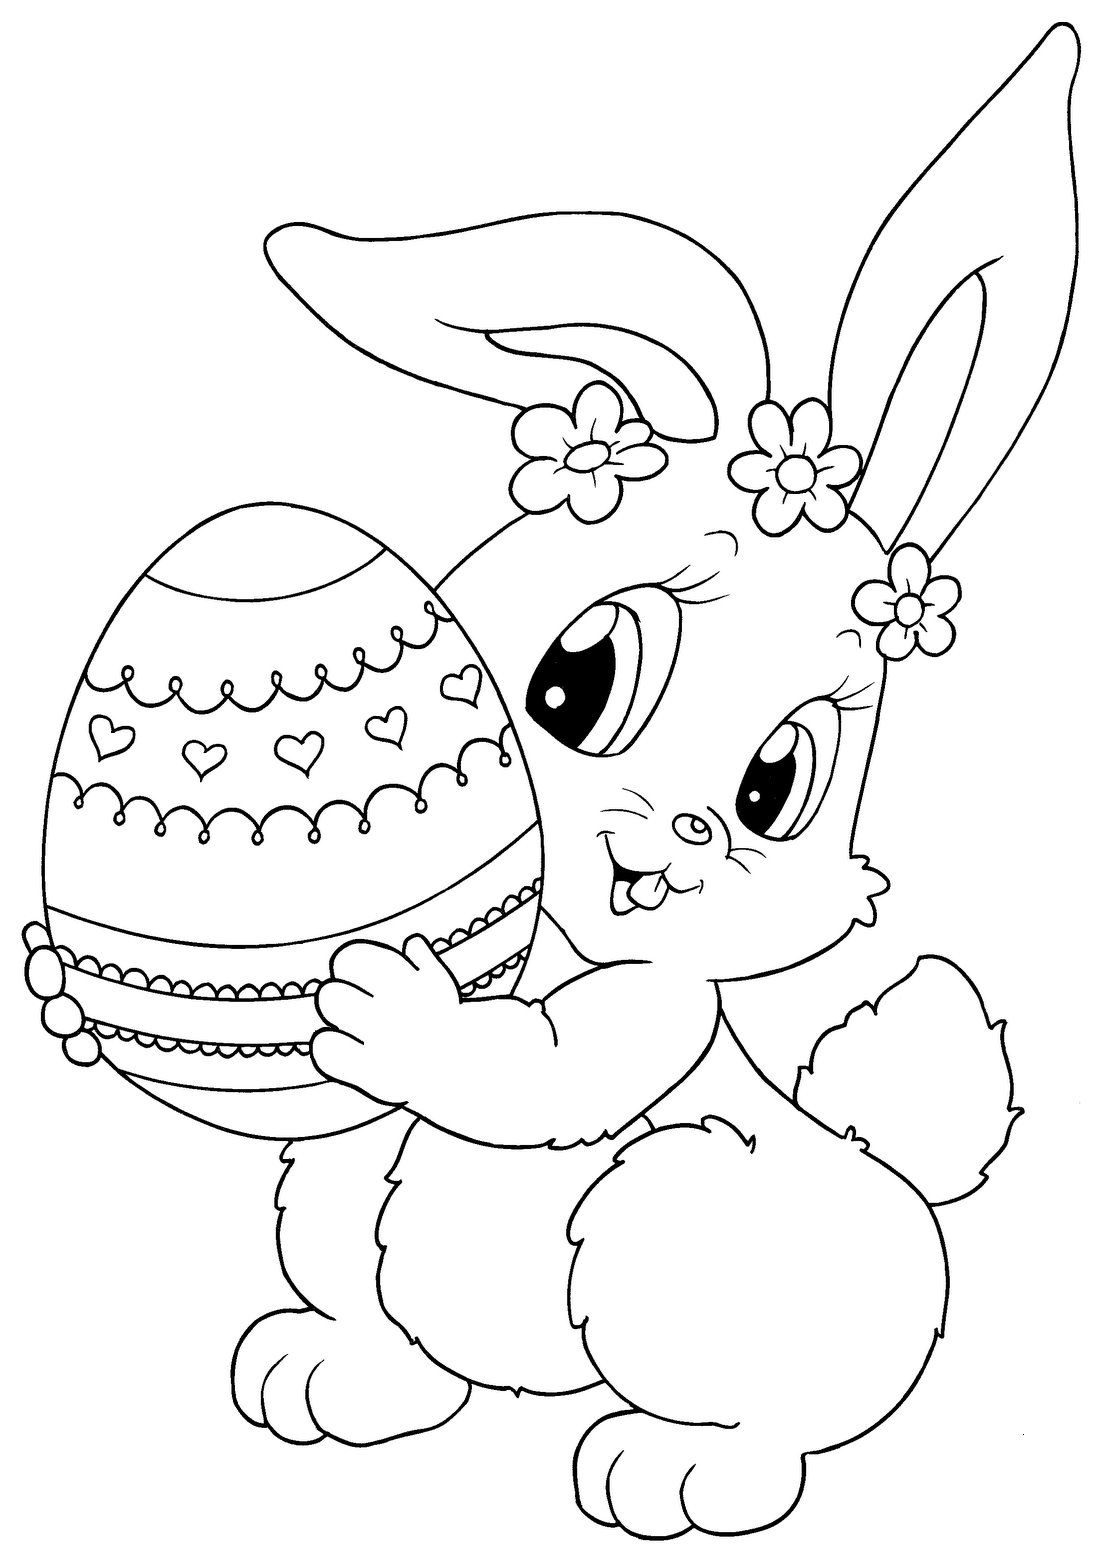 1095x1553 Top Free Printable Easter Bunny Coloring Pages Online Easter